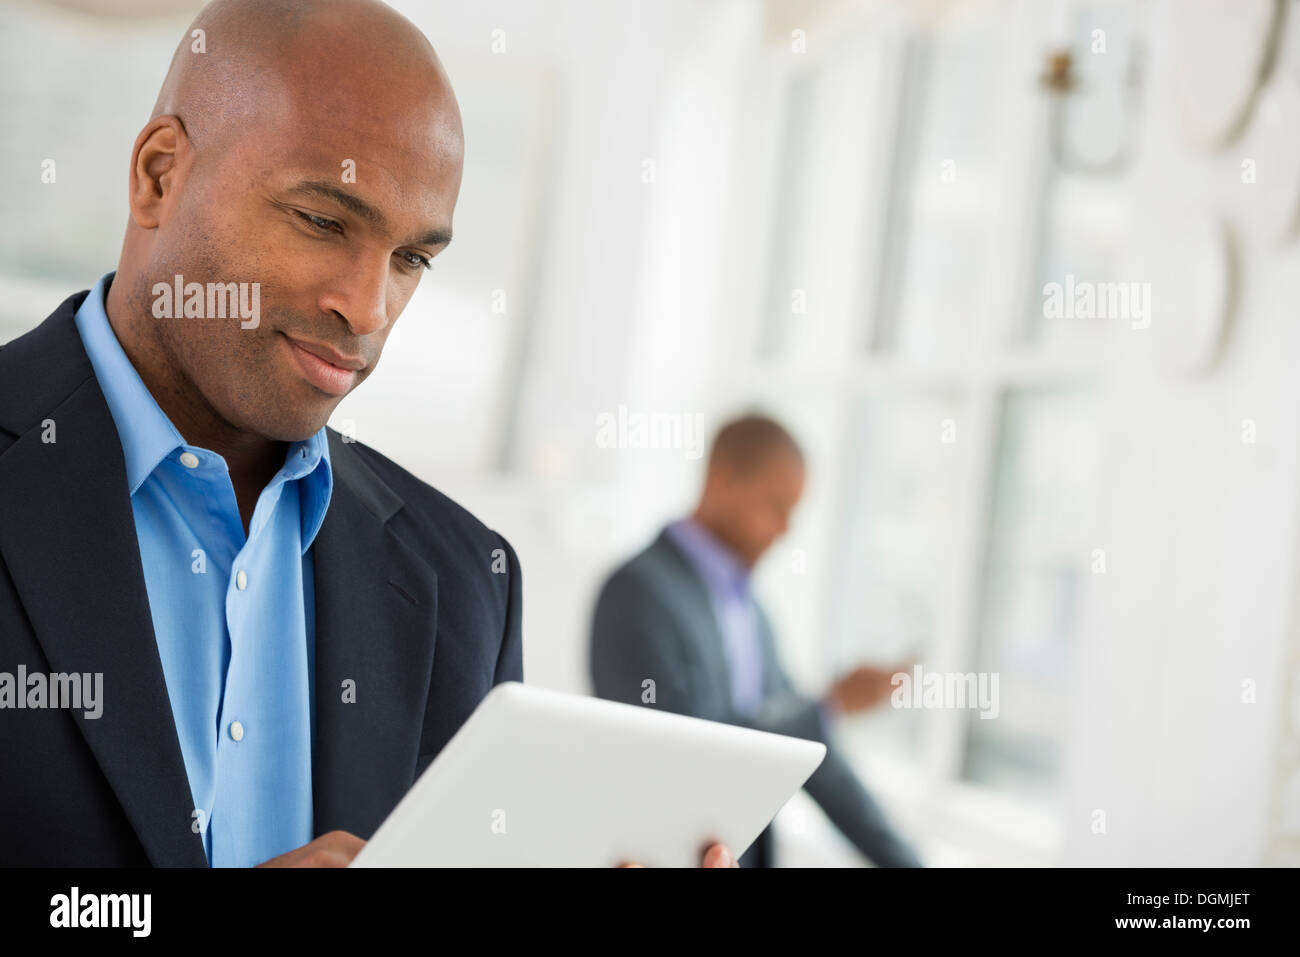 Business people. A man in a business suit using a digital tablet. - Stock Image